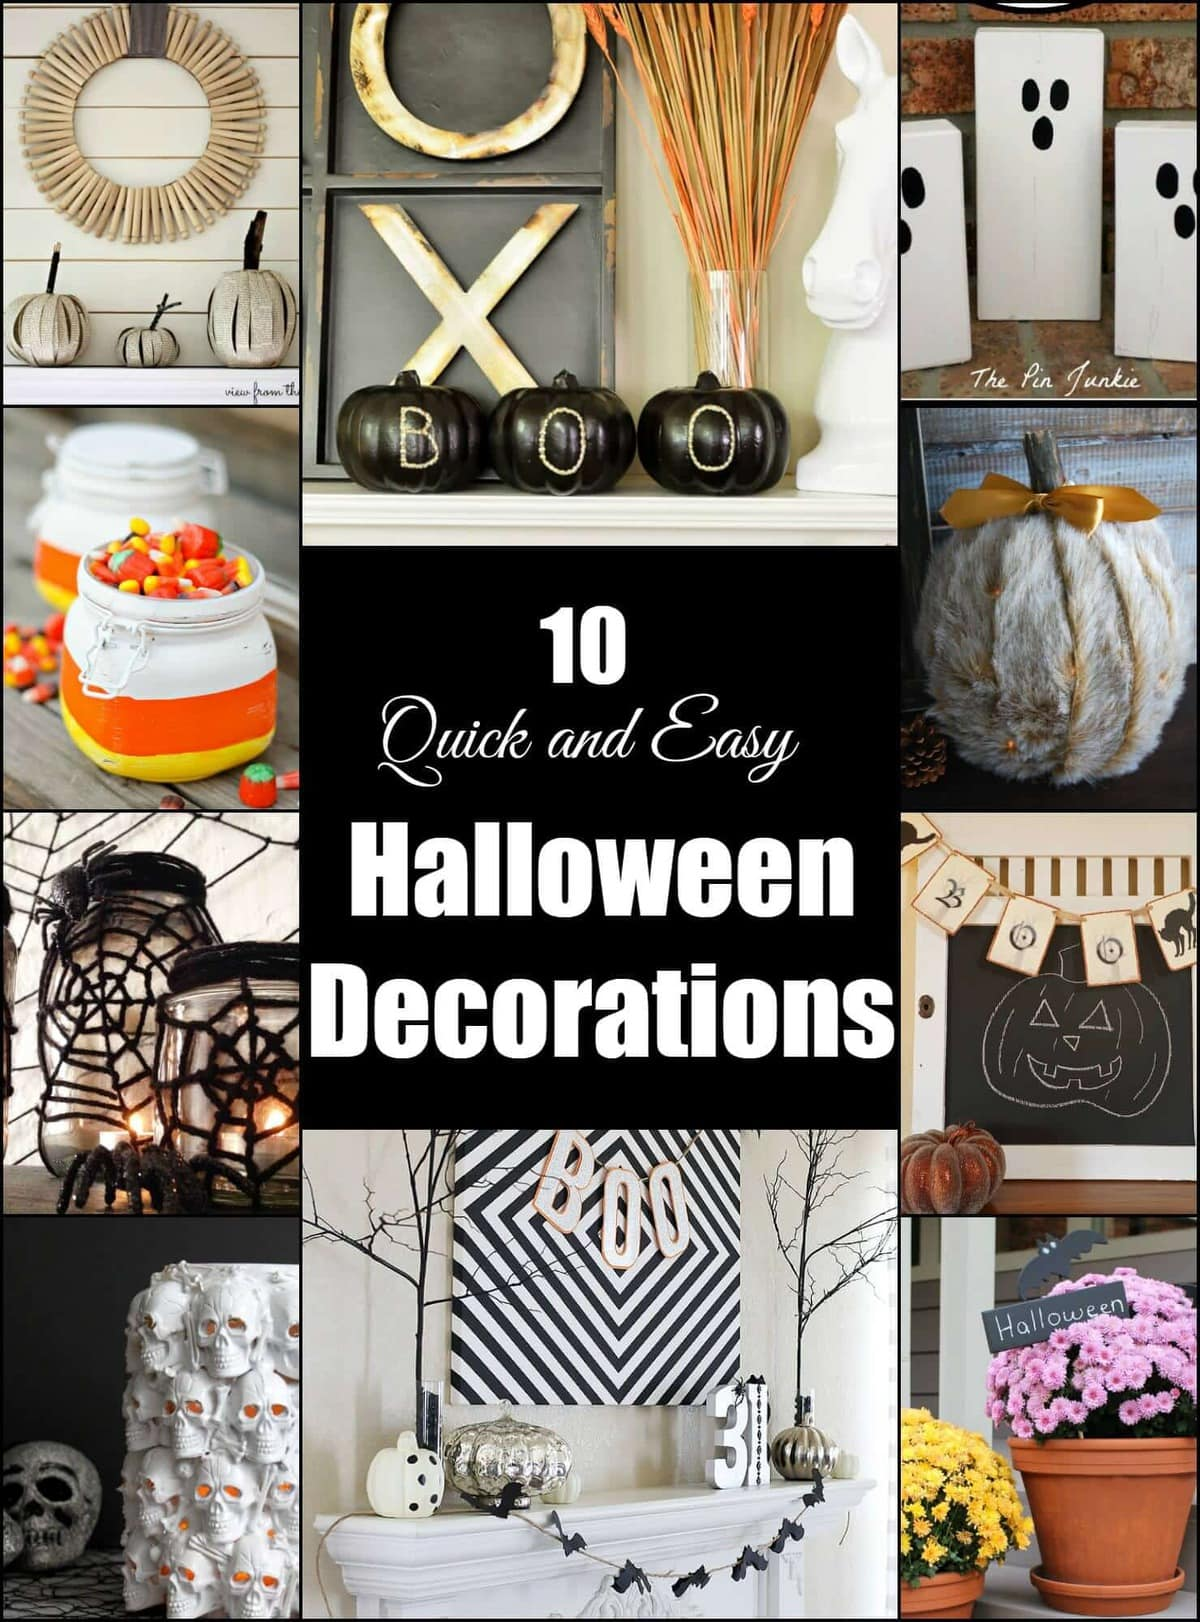 10 quick and easy halloween decorations page 2 of 2. Black Bedroom Furniture Sets. Home Design Ideas